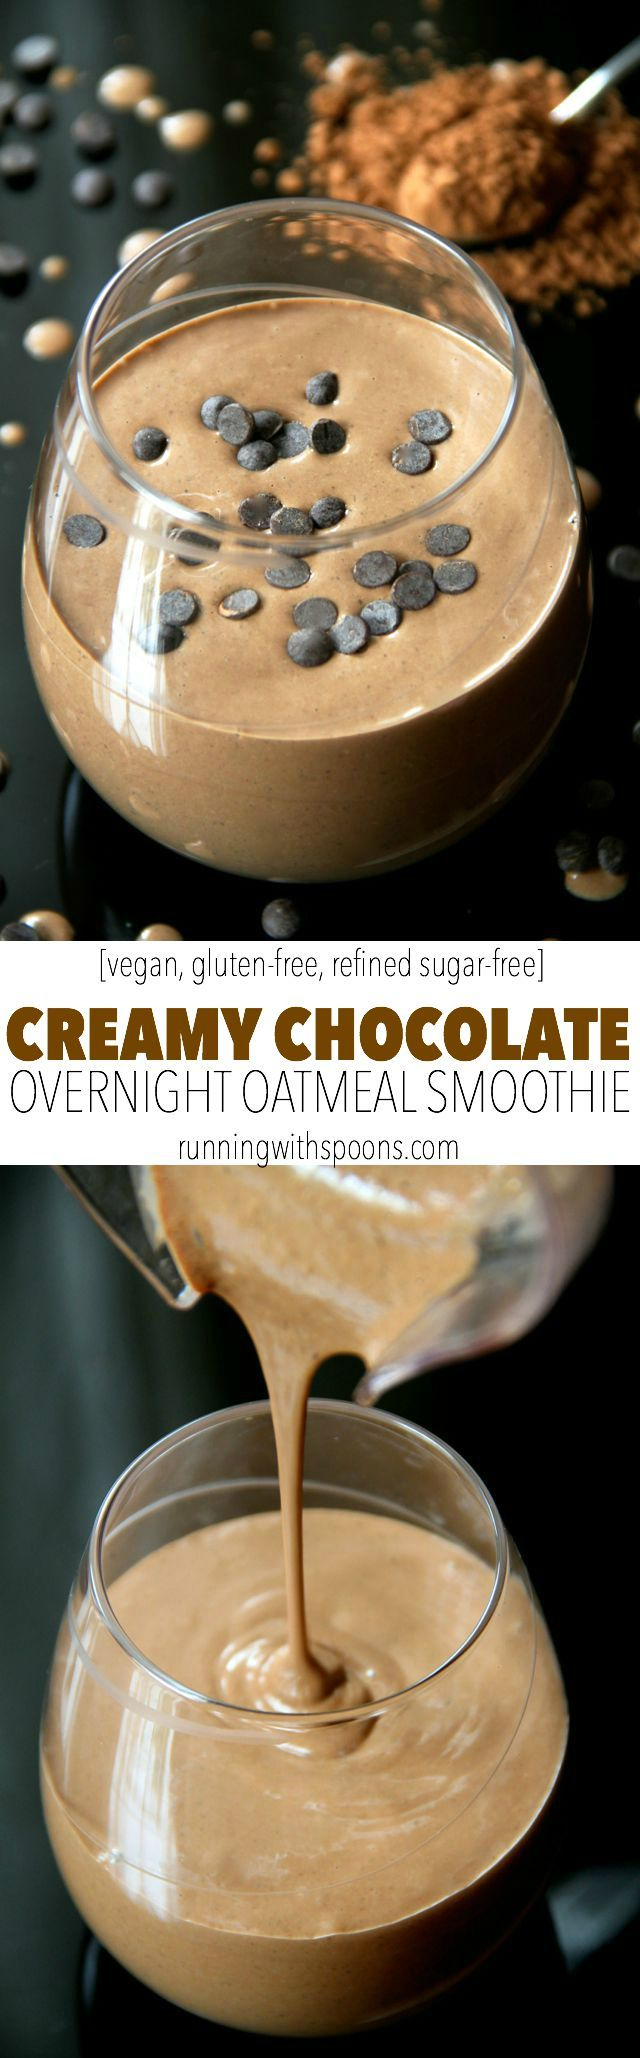 Chocolate Overnight Oatmeal Smoothie -- smooth, creamy, and sure to keep you satisfied for hours! This vegan smoothie will knock out those chocolate cravings while providing you with a balanced breakfast or snack || runningwithspoons.com #vegan #healthy #recipe